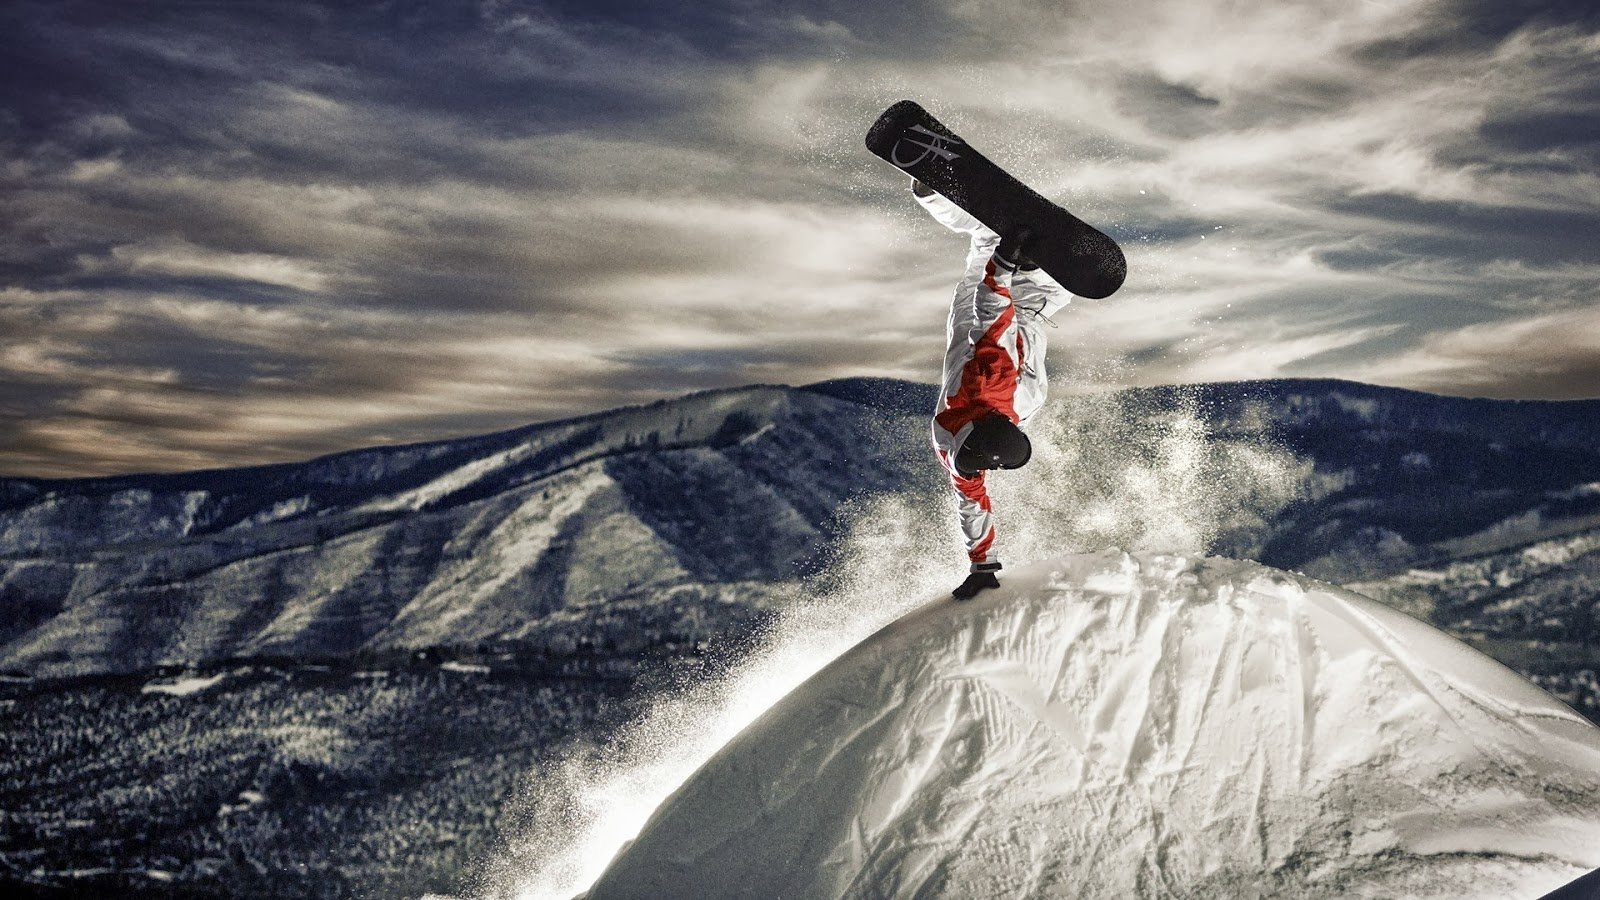 snowboard-wallpaper-6